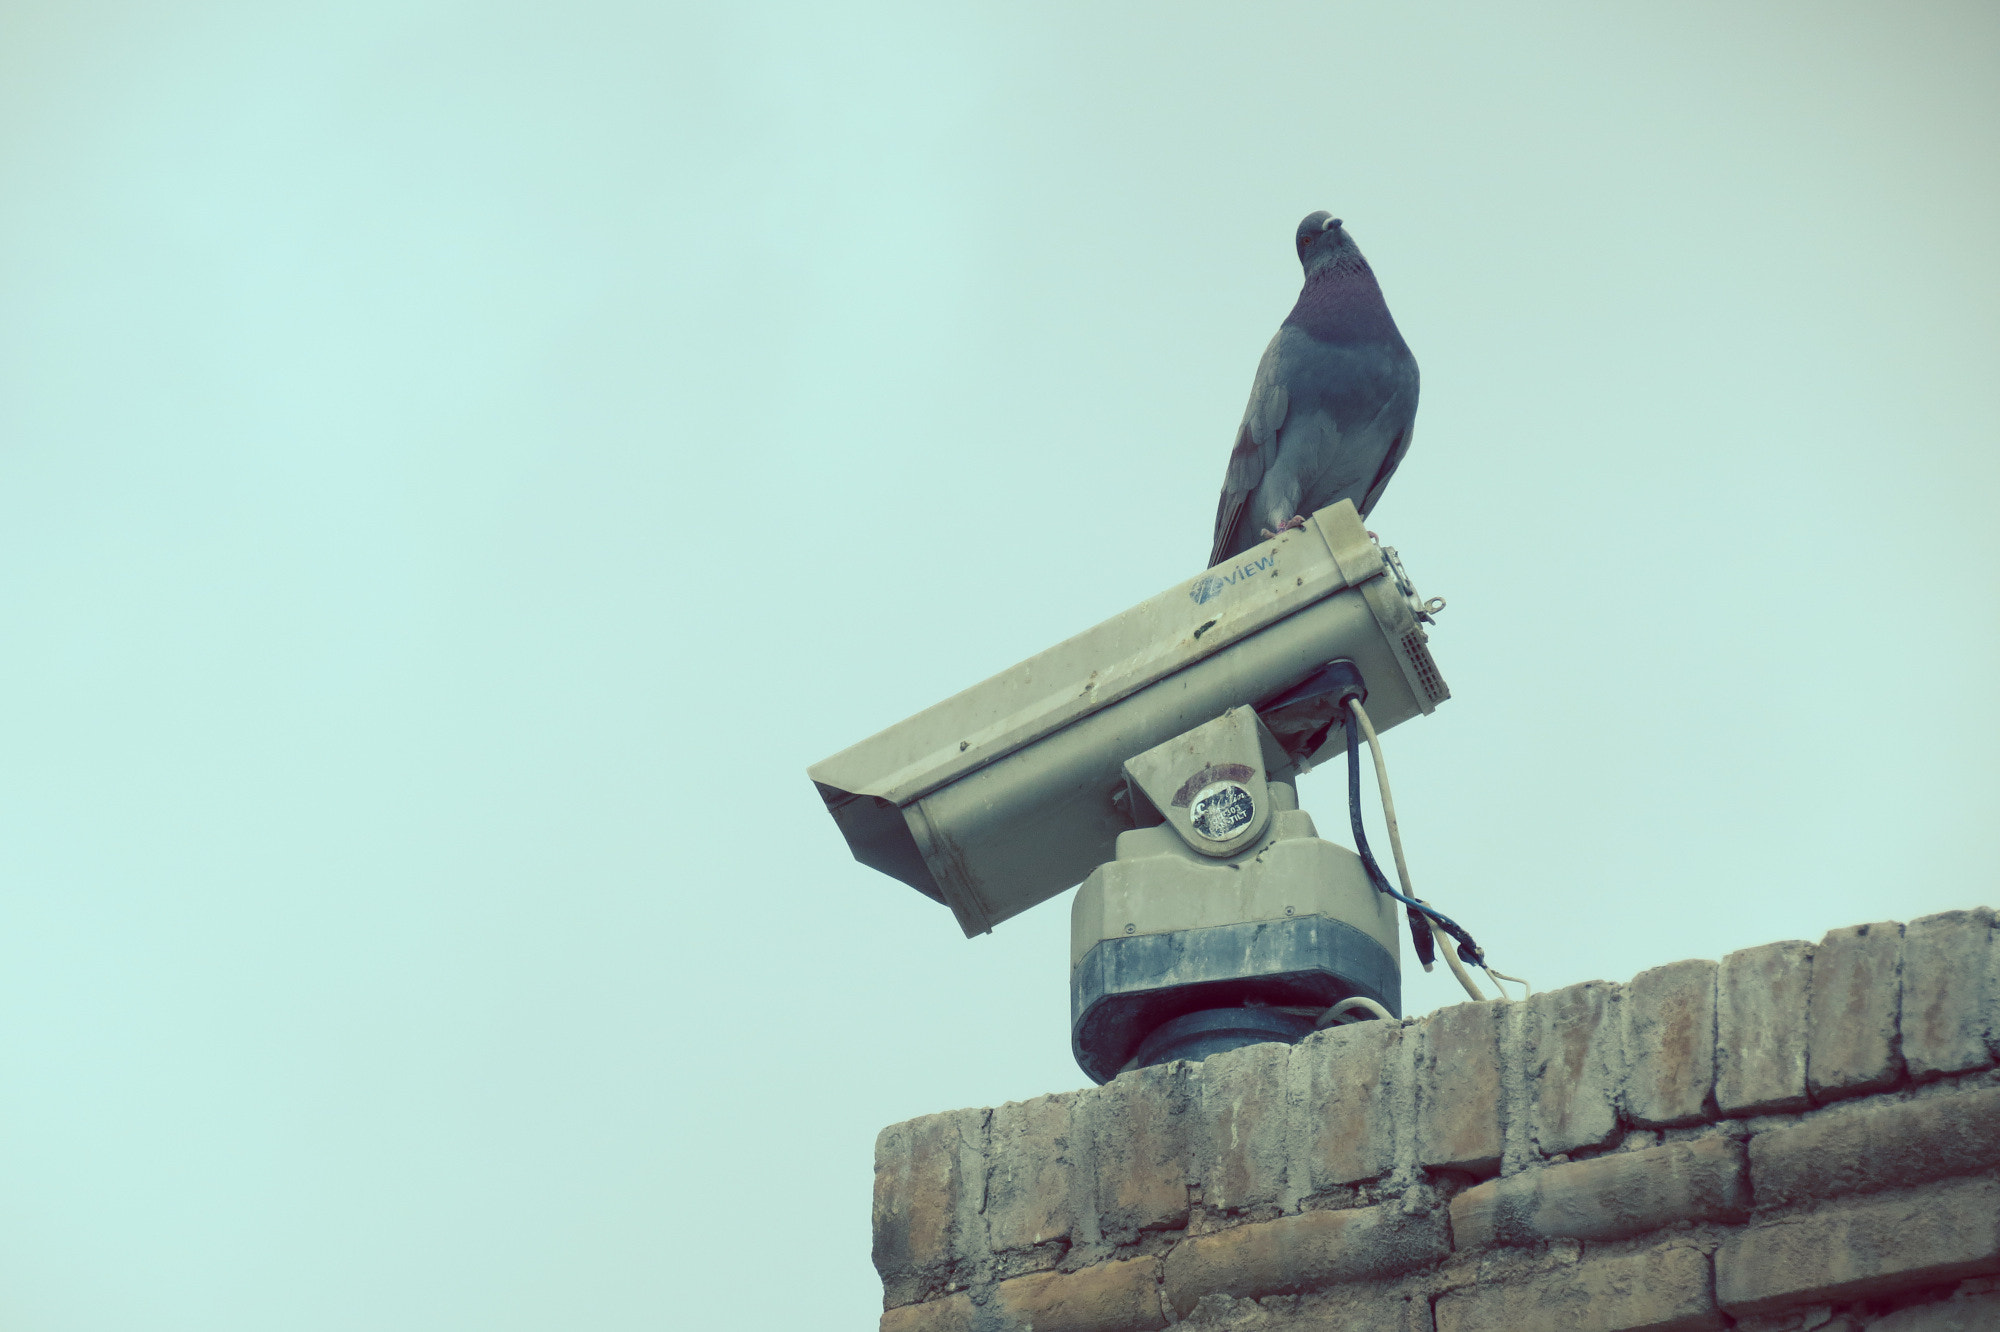 Photograph surveillance by Milad Ghasemi on 500px